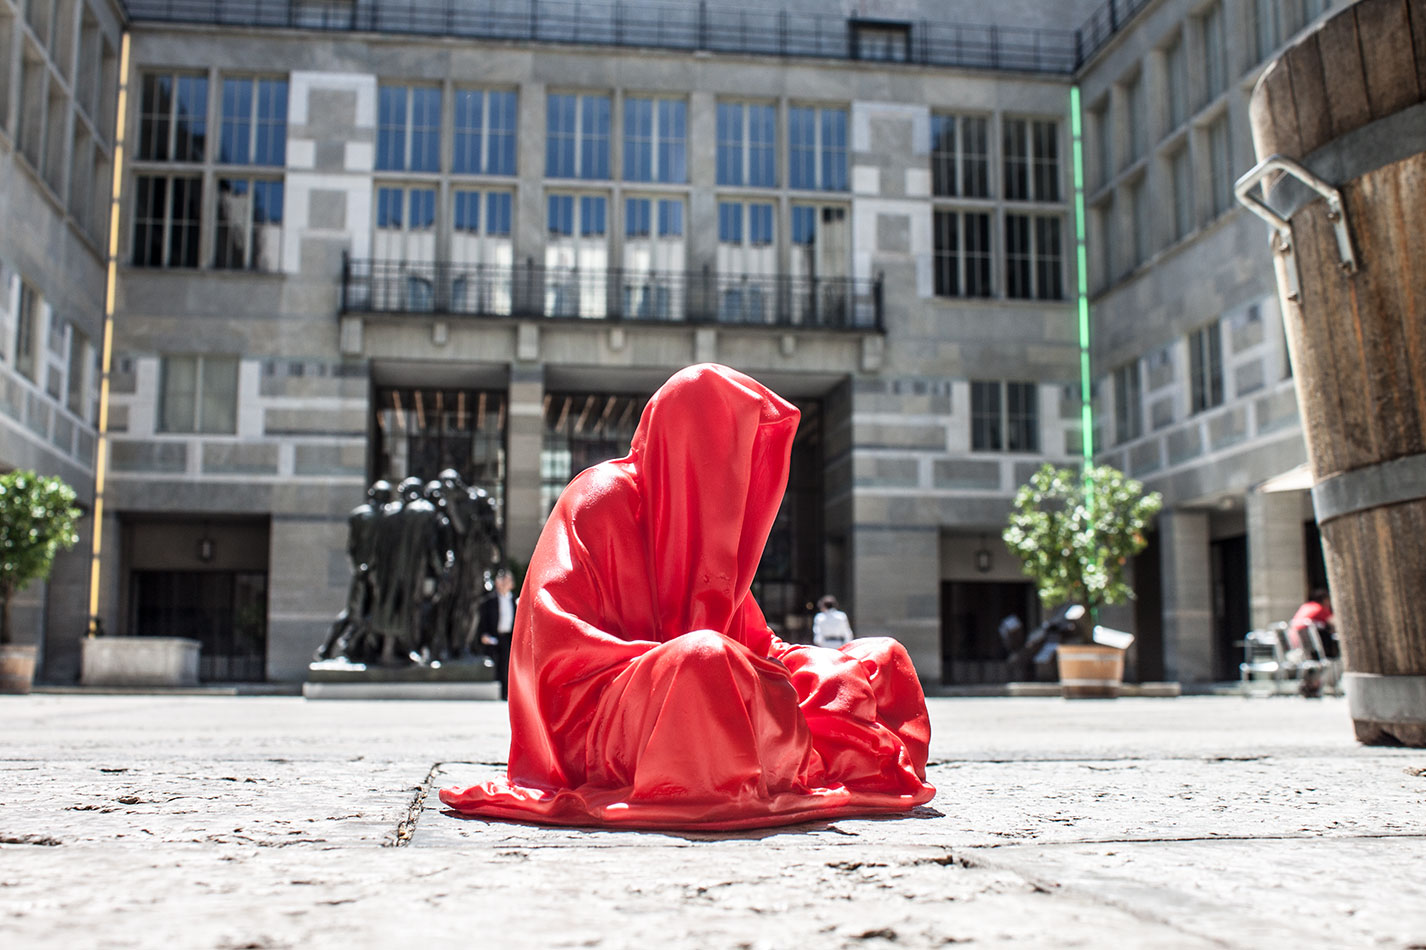 highlights-public-artbasel-kunsthaus-basel-scope-art-show-guardians-of-time-manfred-kielnhofer-steinreich-contemporary-art-sculpture-tour-art-parcours-1601